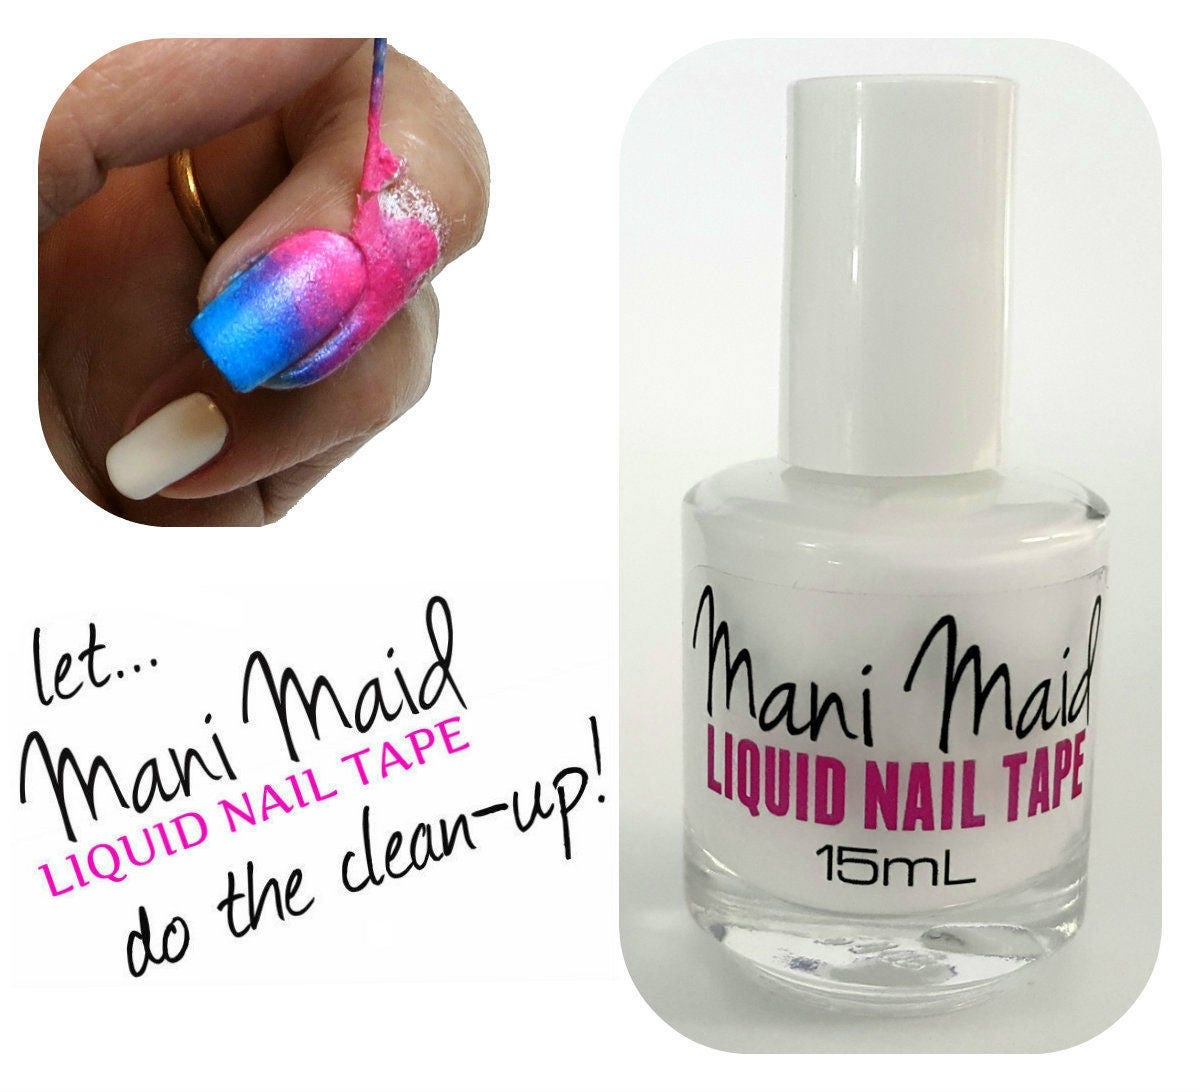 Liquid Nail Tape Mani Maid Peel Off Nail Polish Remover Latex